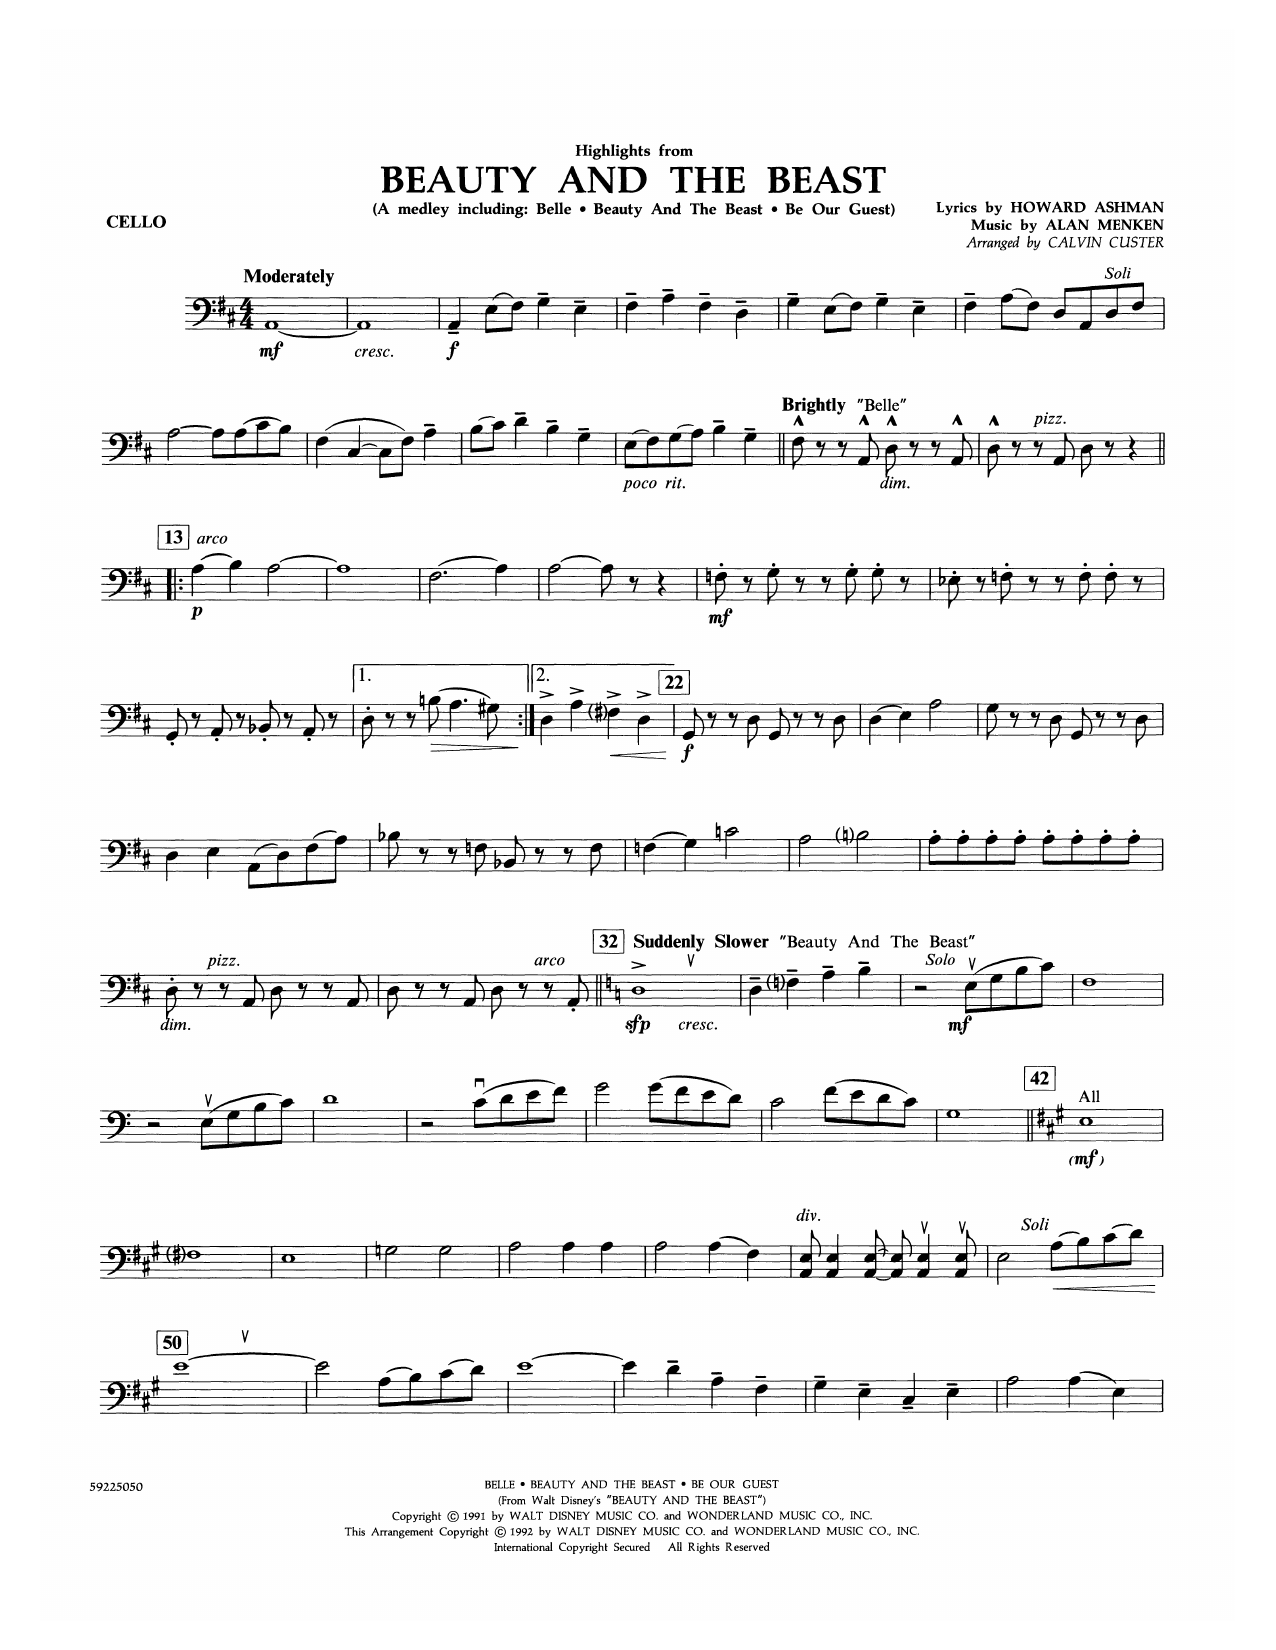 Beauty and the Beast Highlights (arr. Calvin Custer) - Cello (Orchestra)